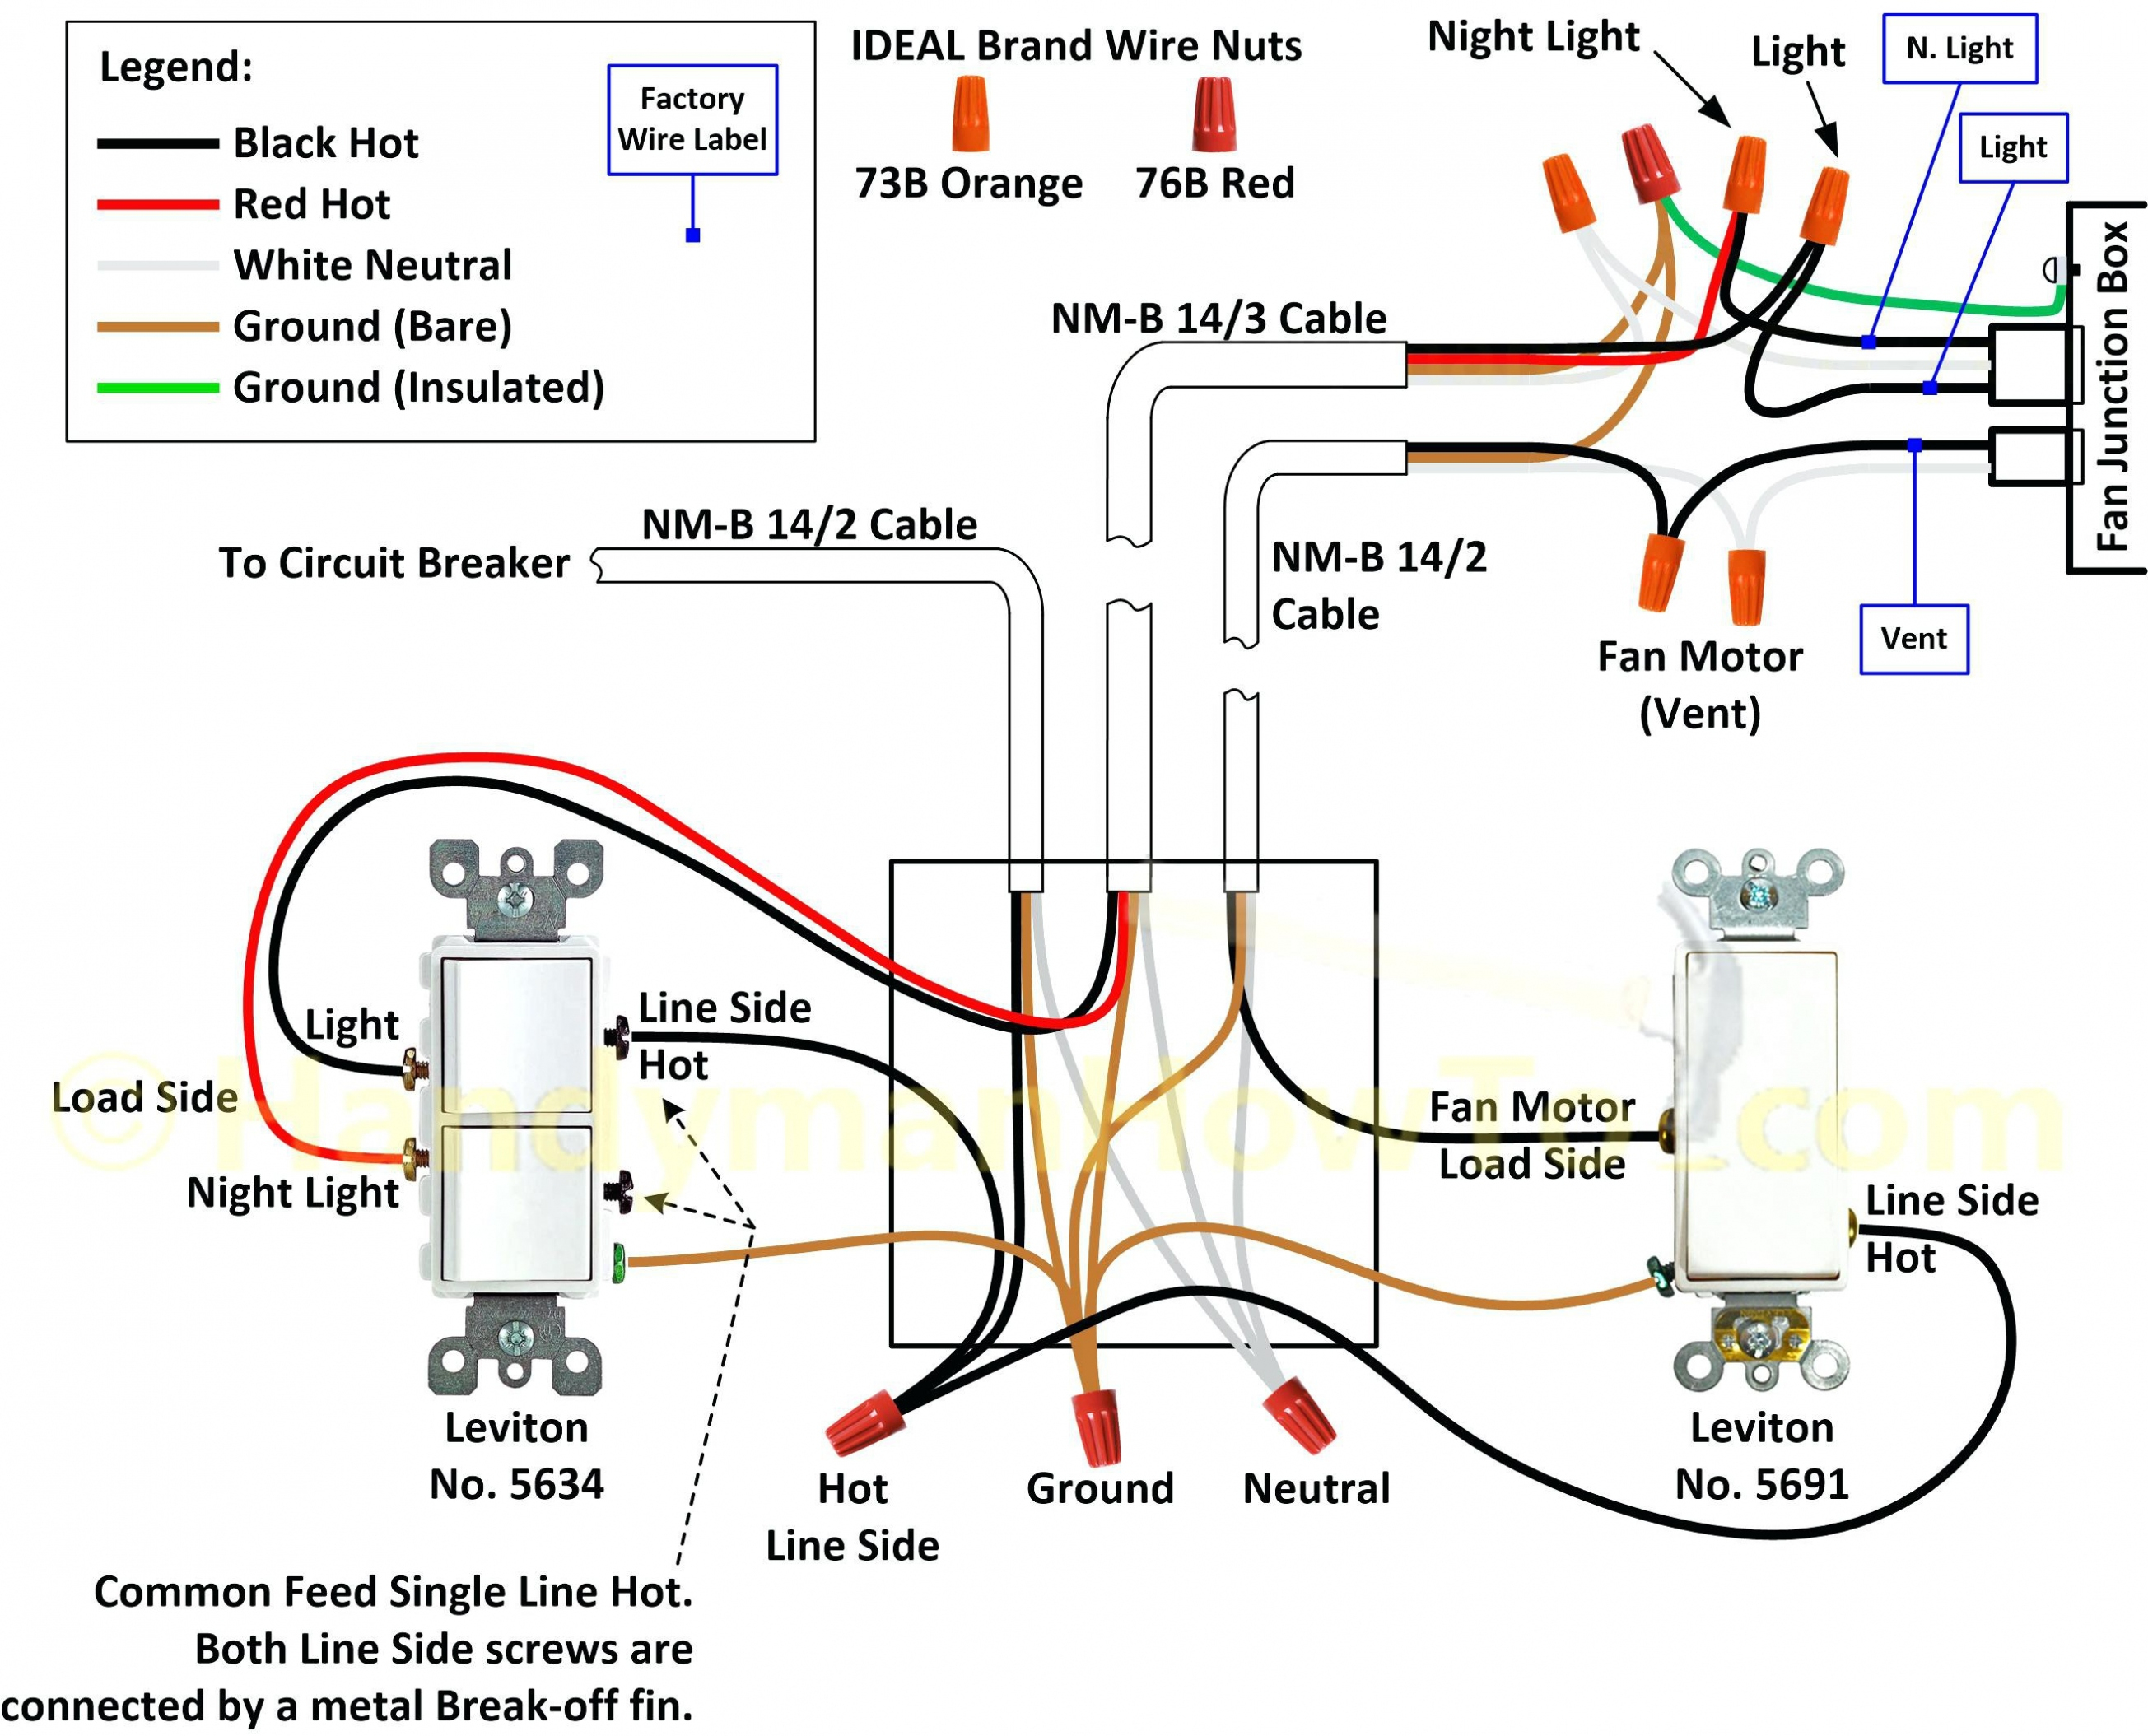 4 Way Switch Wiring Diagram Multiple Lights Elegant 3 Way Switch – 3 - Wiring Diagram 3 Way Switch